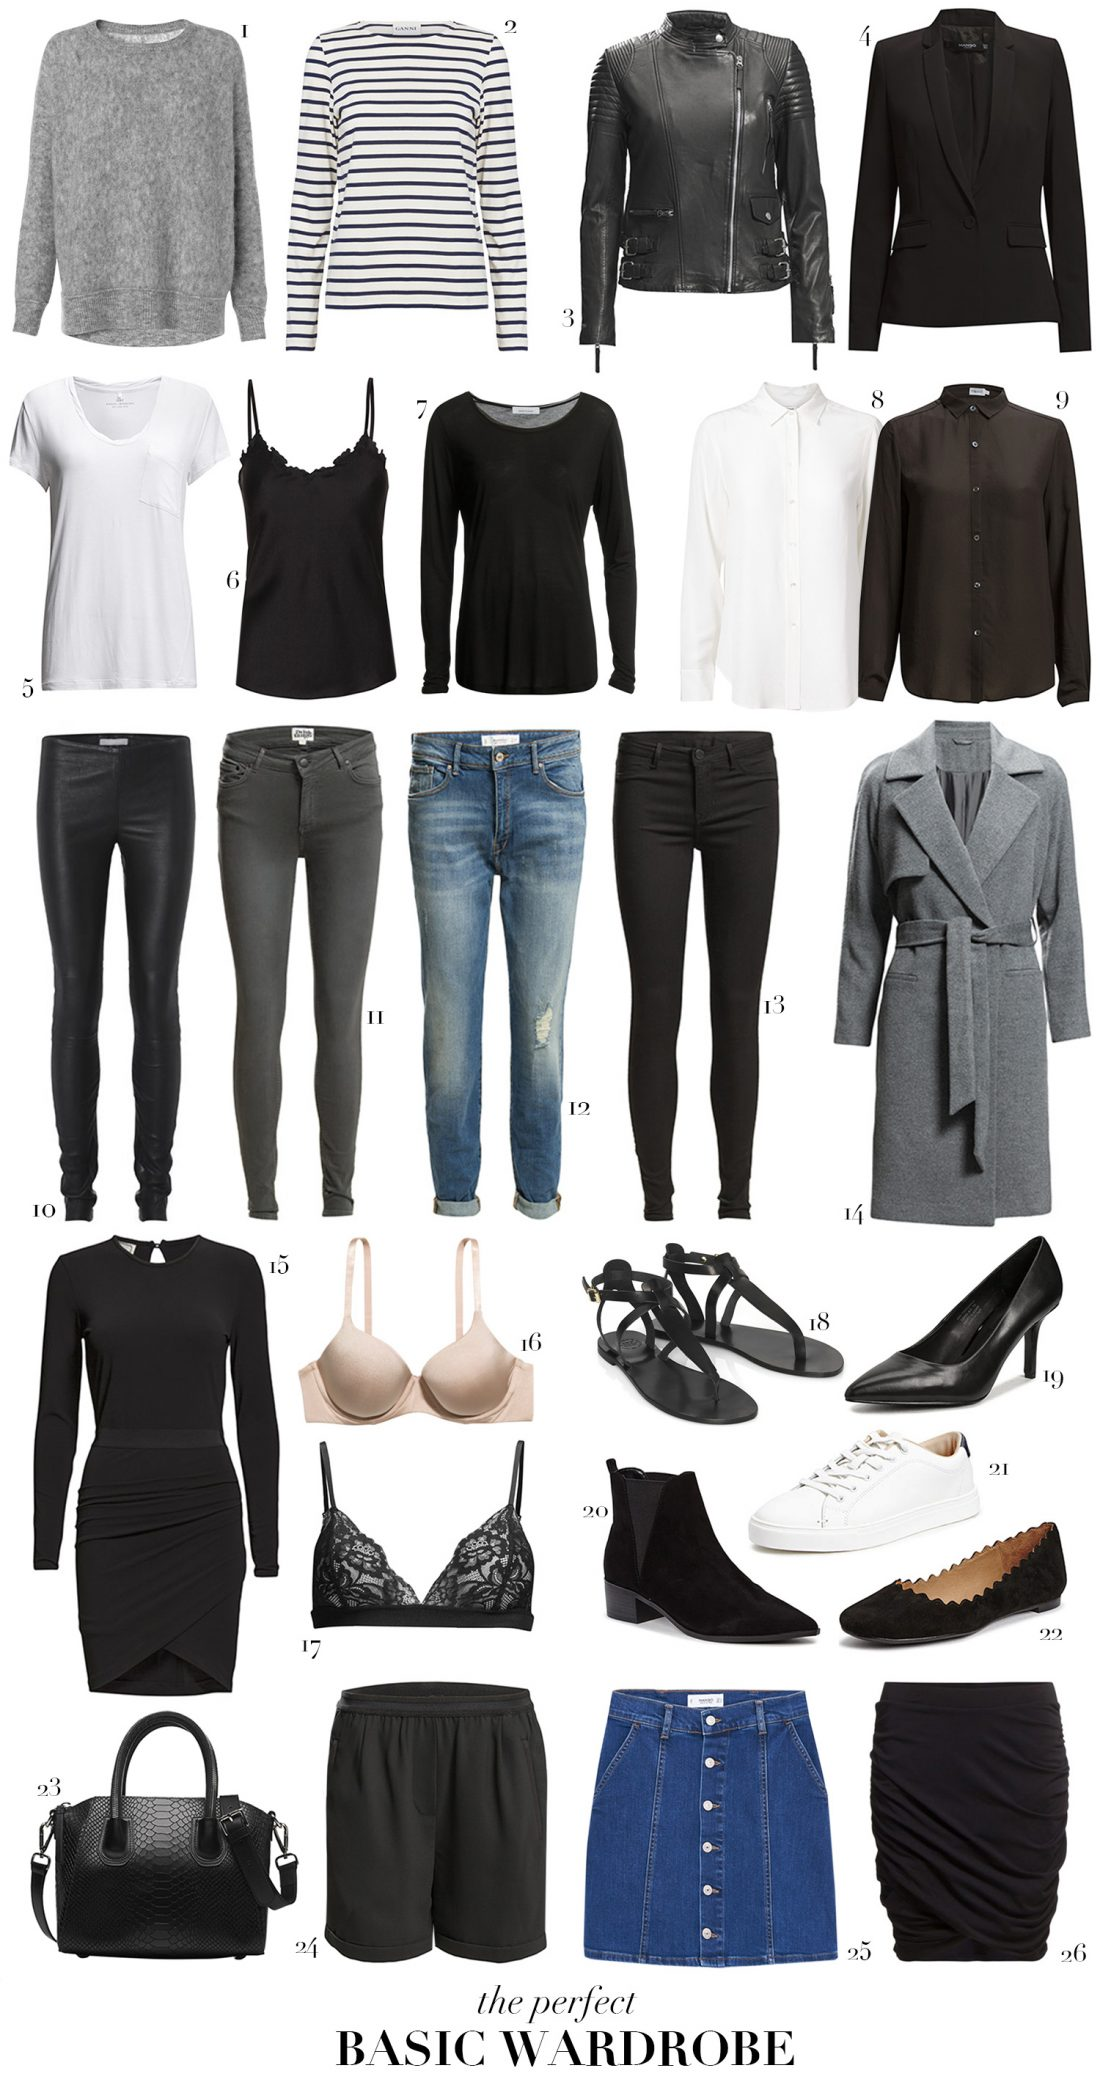 perfect-basic-wardrobe1.jpg